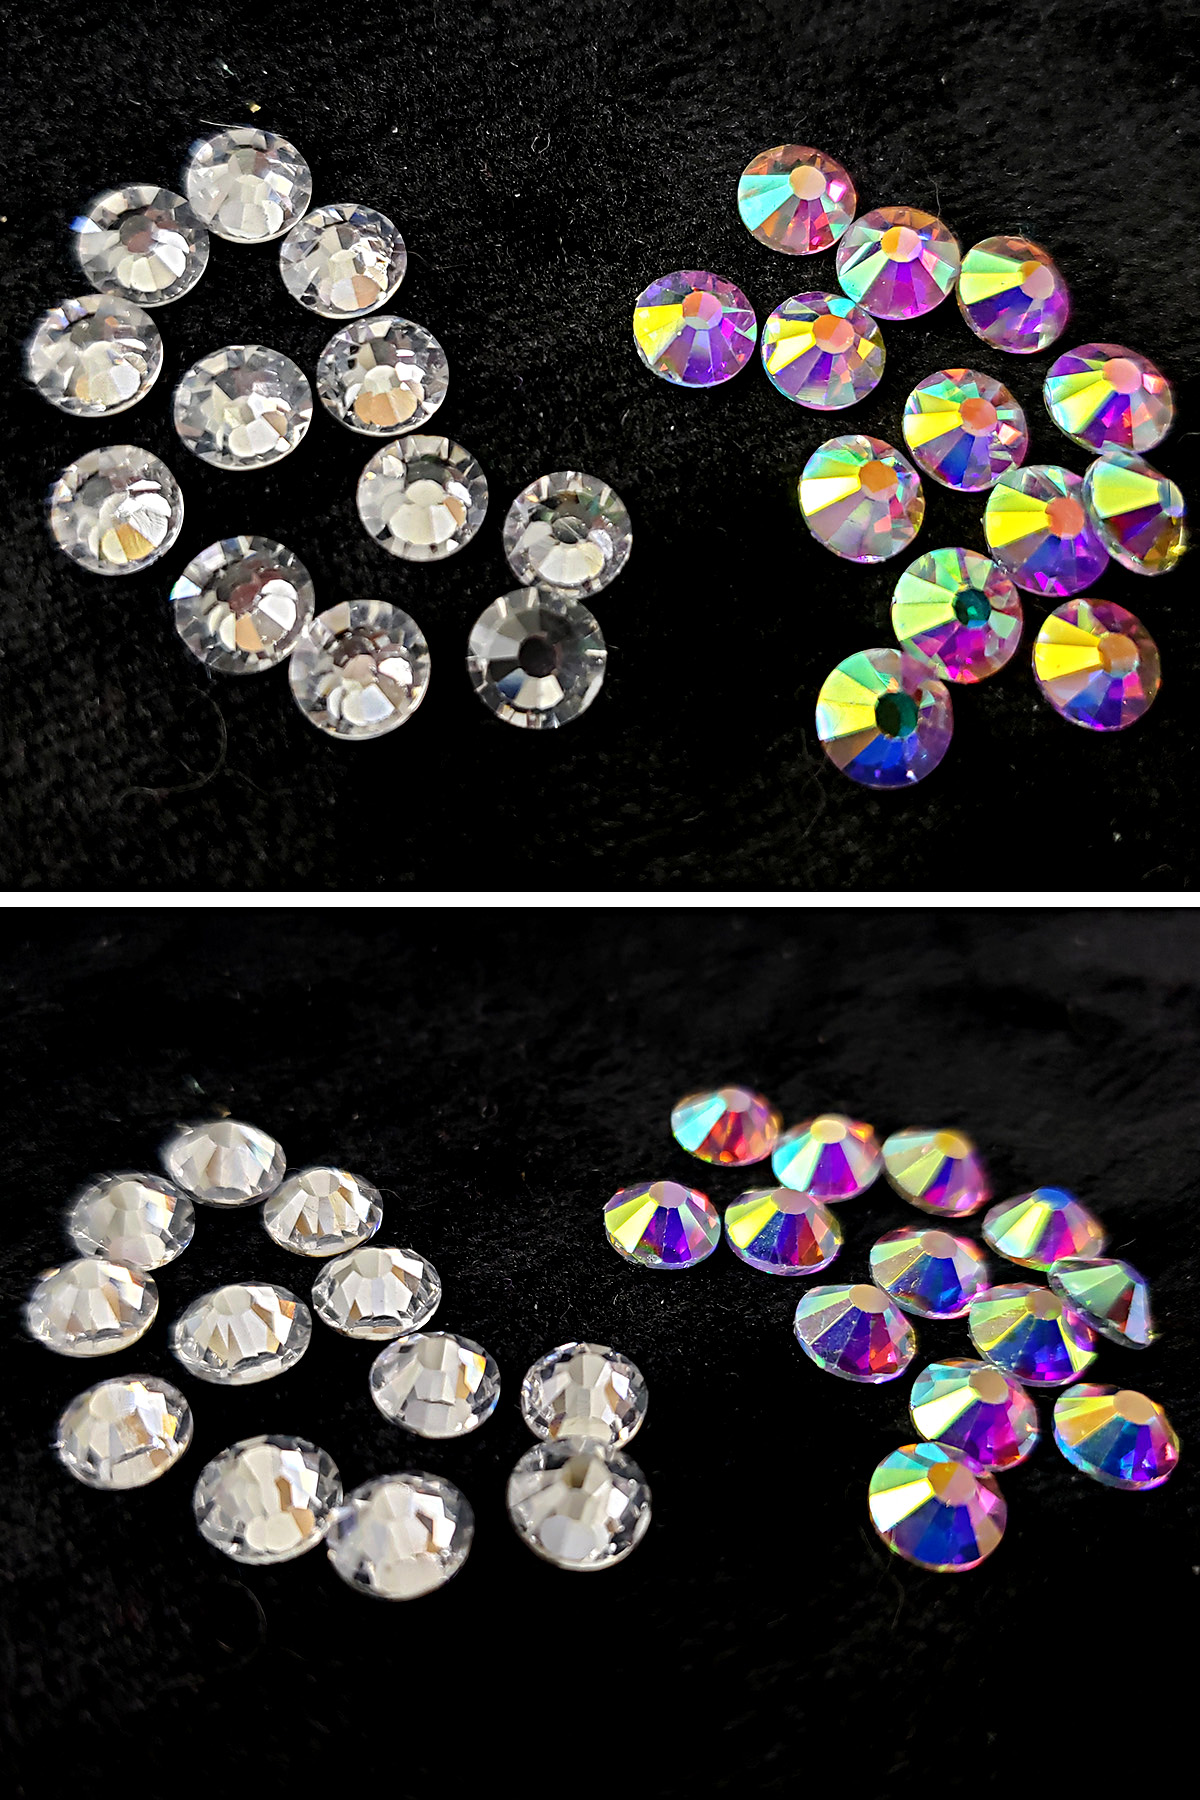 A two part compilation image showing side by side views of clear and iridescent rhinestones.